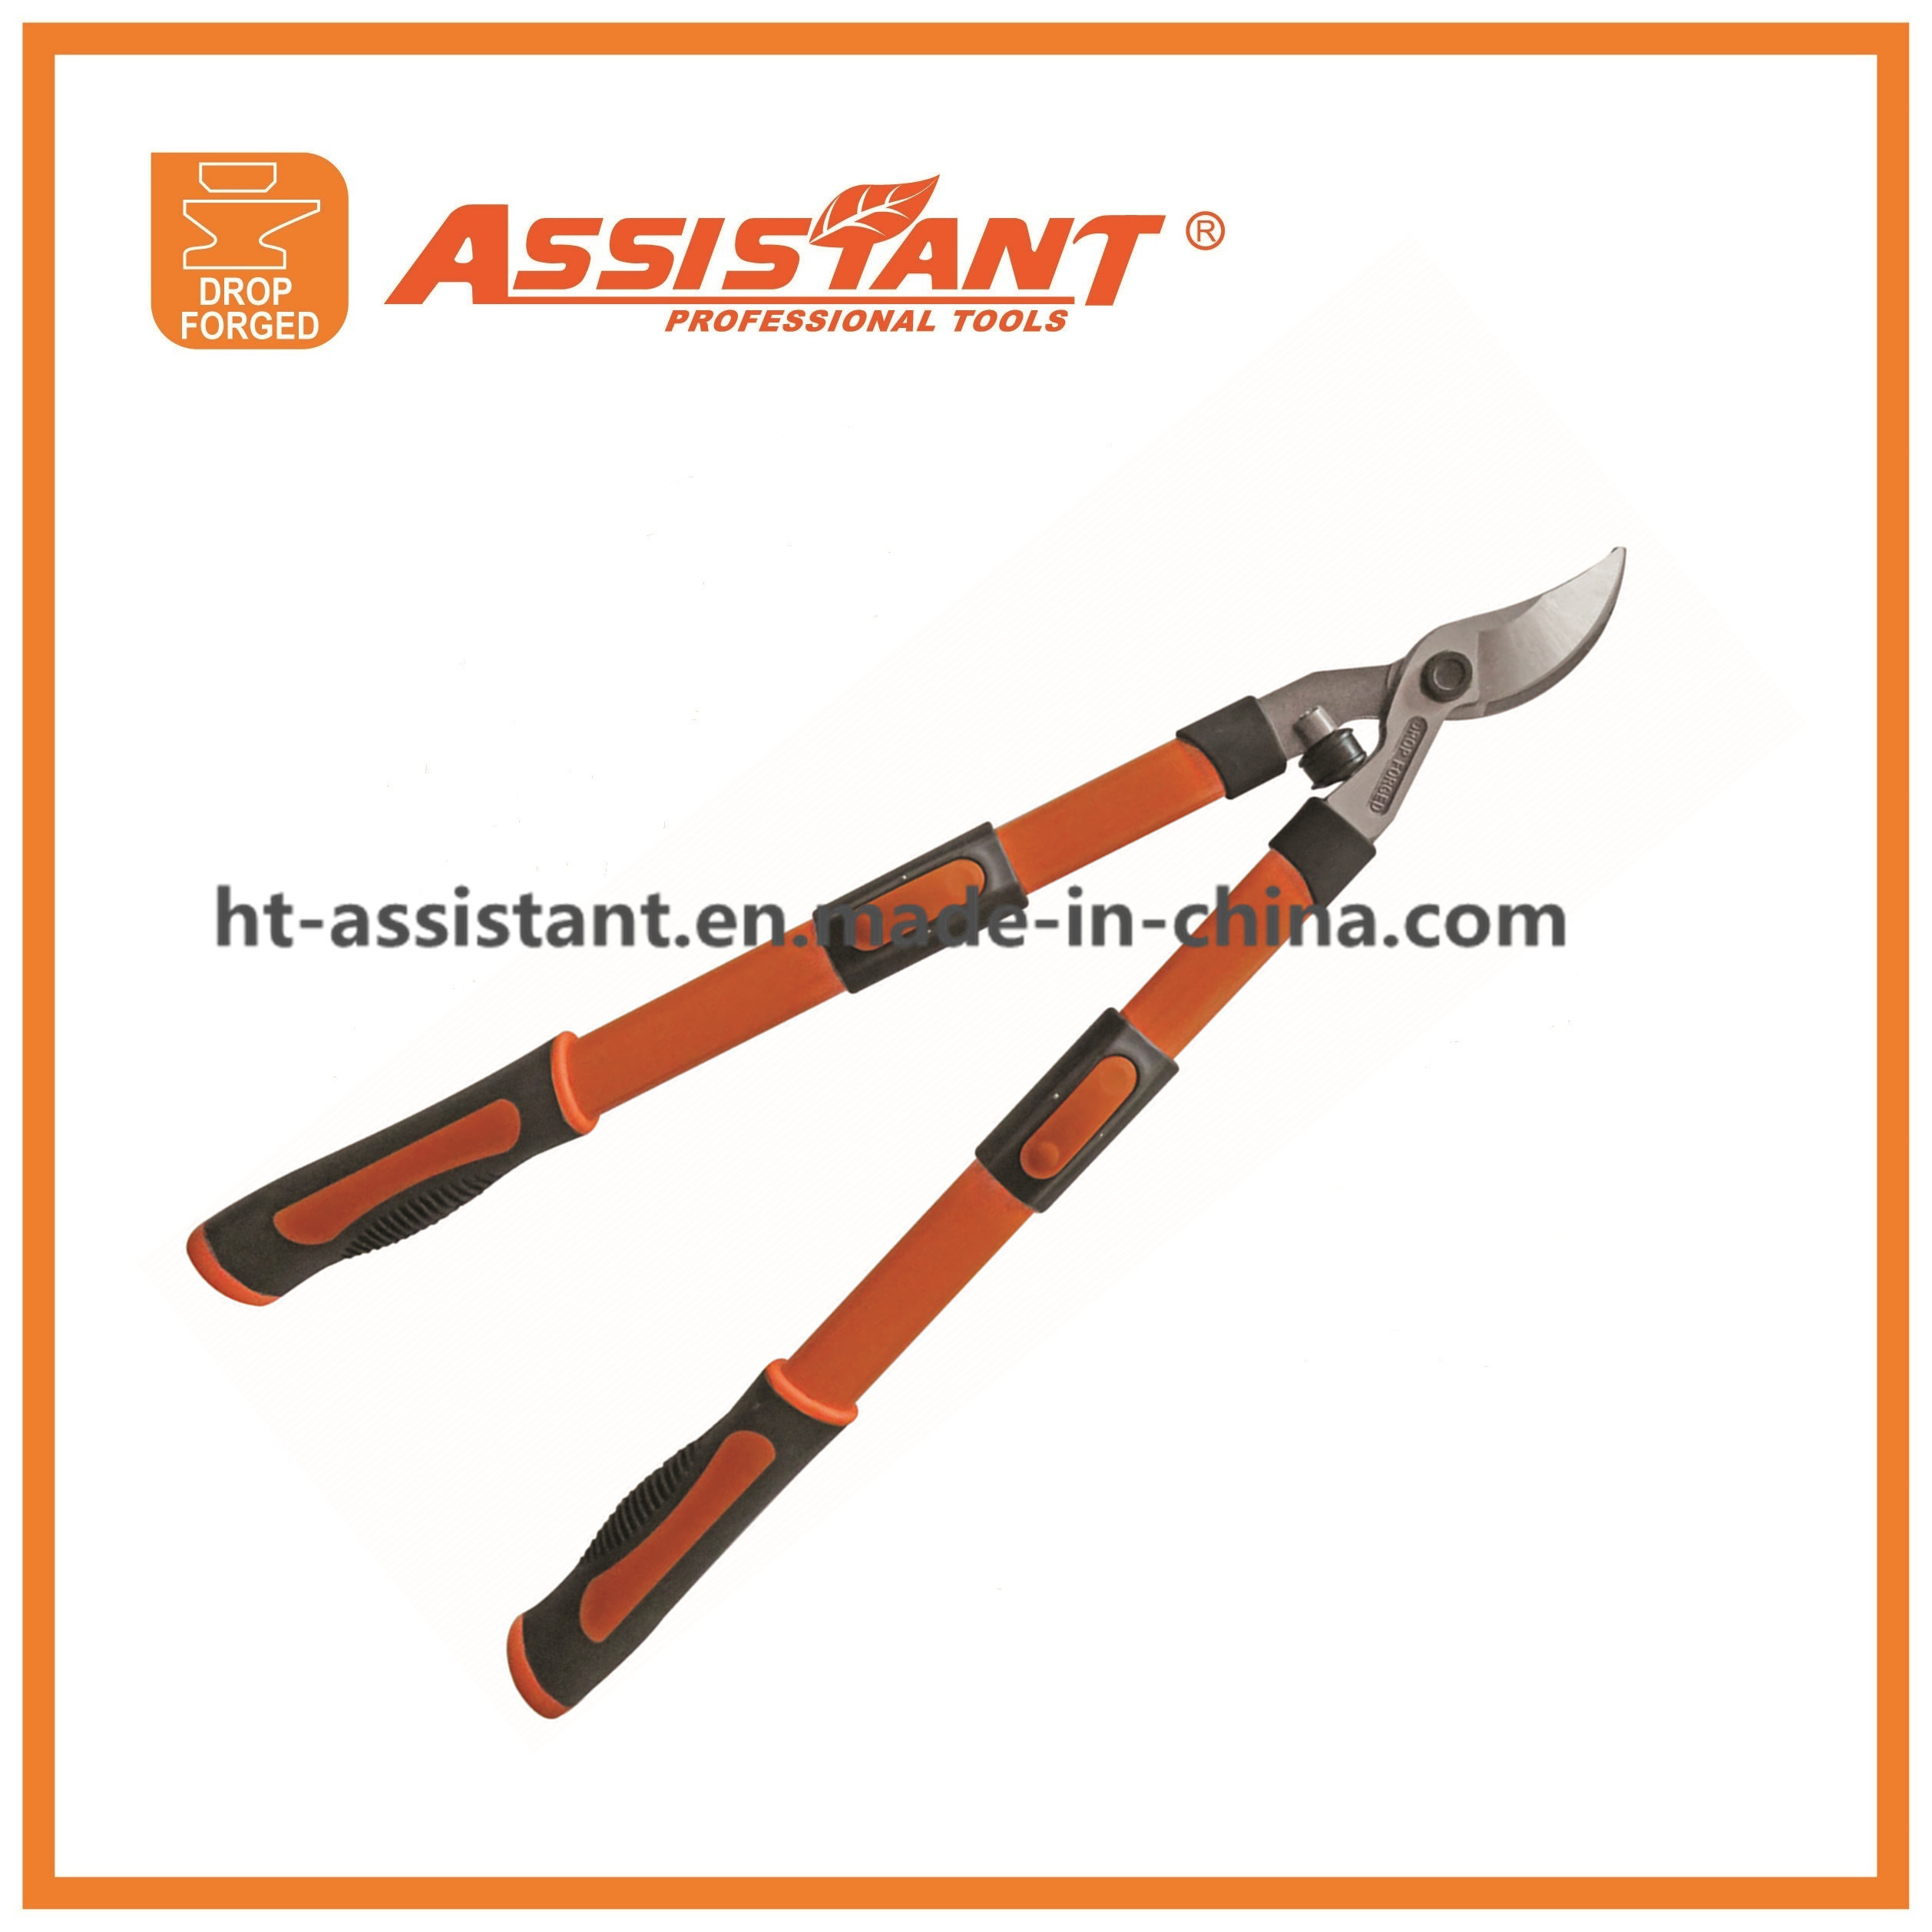 Garden Lopping Shears Drop Forged Bypass Loppers with Replaceable Blade